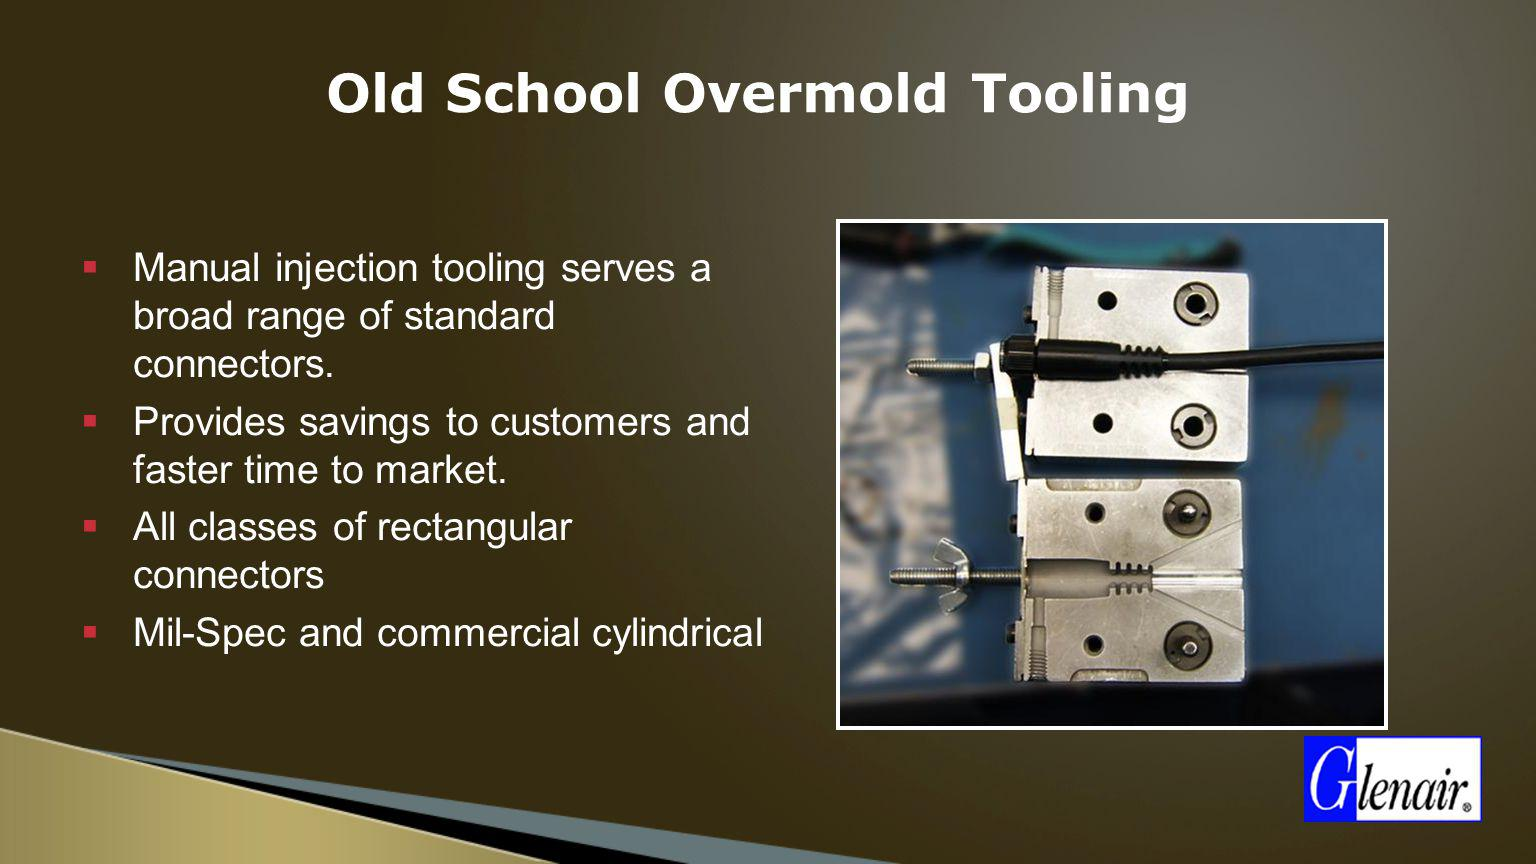 Old School Overmold Tooling